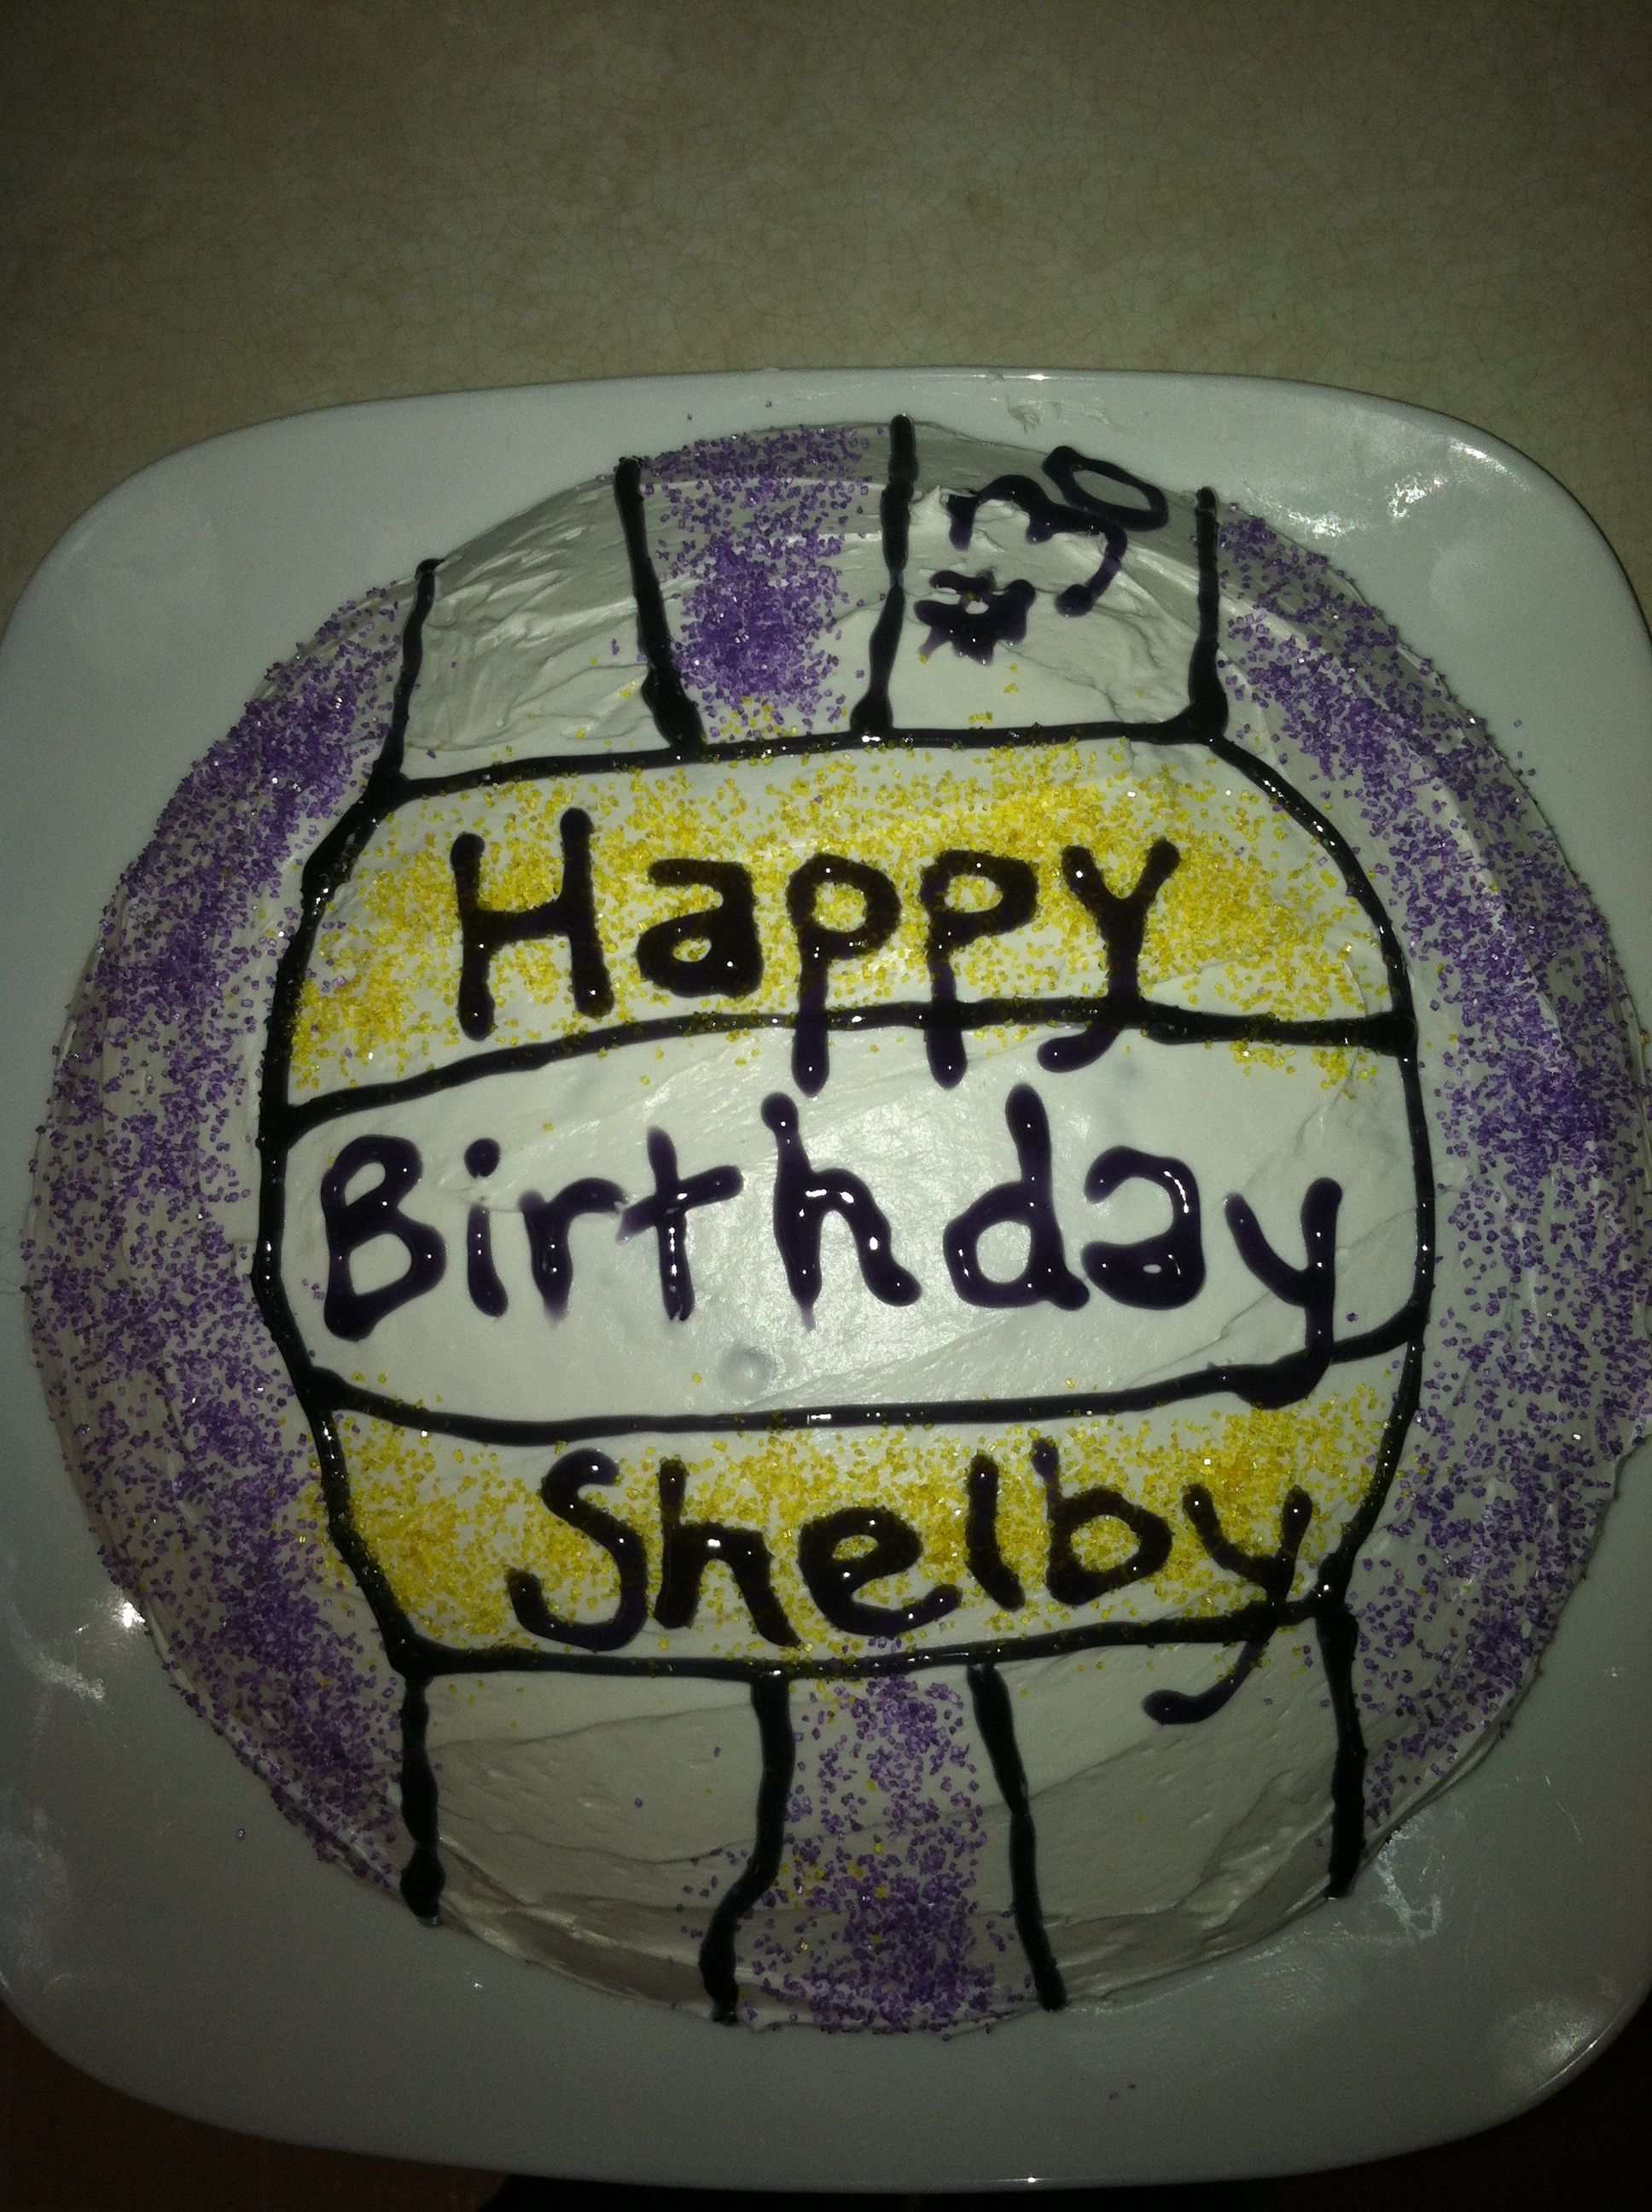 Simple Volleyball Cake Design Volleyball Cakes Cake Cake Design